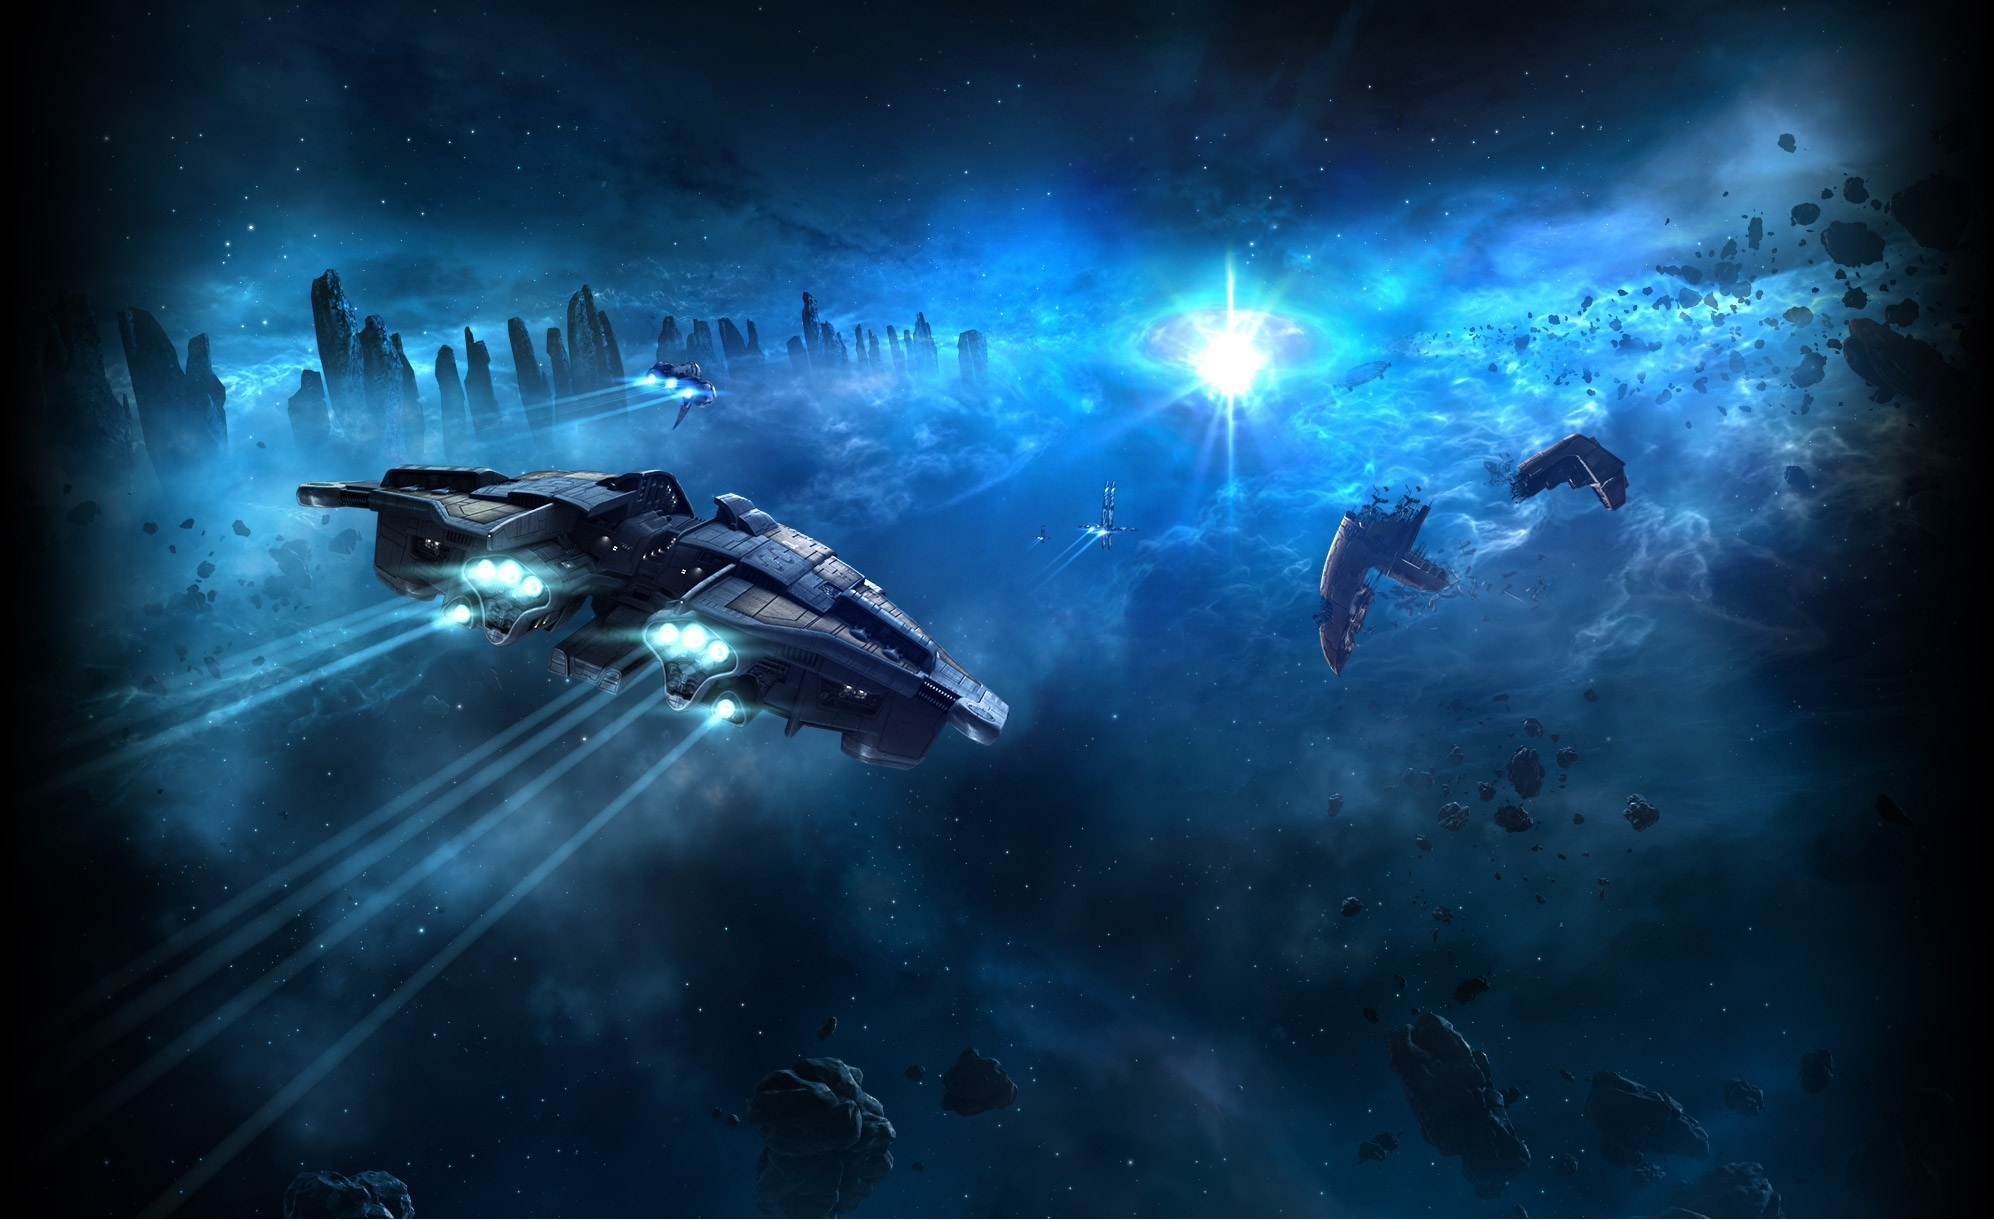 3d Video Wallpaper Player Eve Online Odyssey Launches Inspiring New Adventures